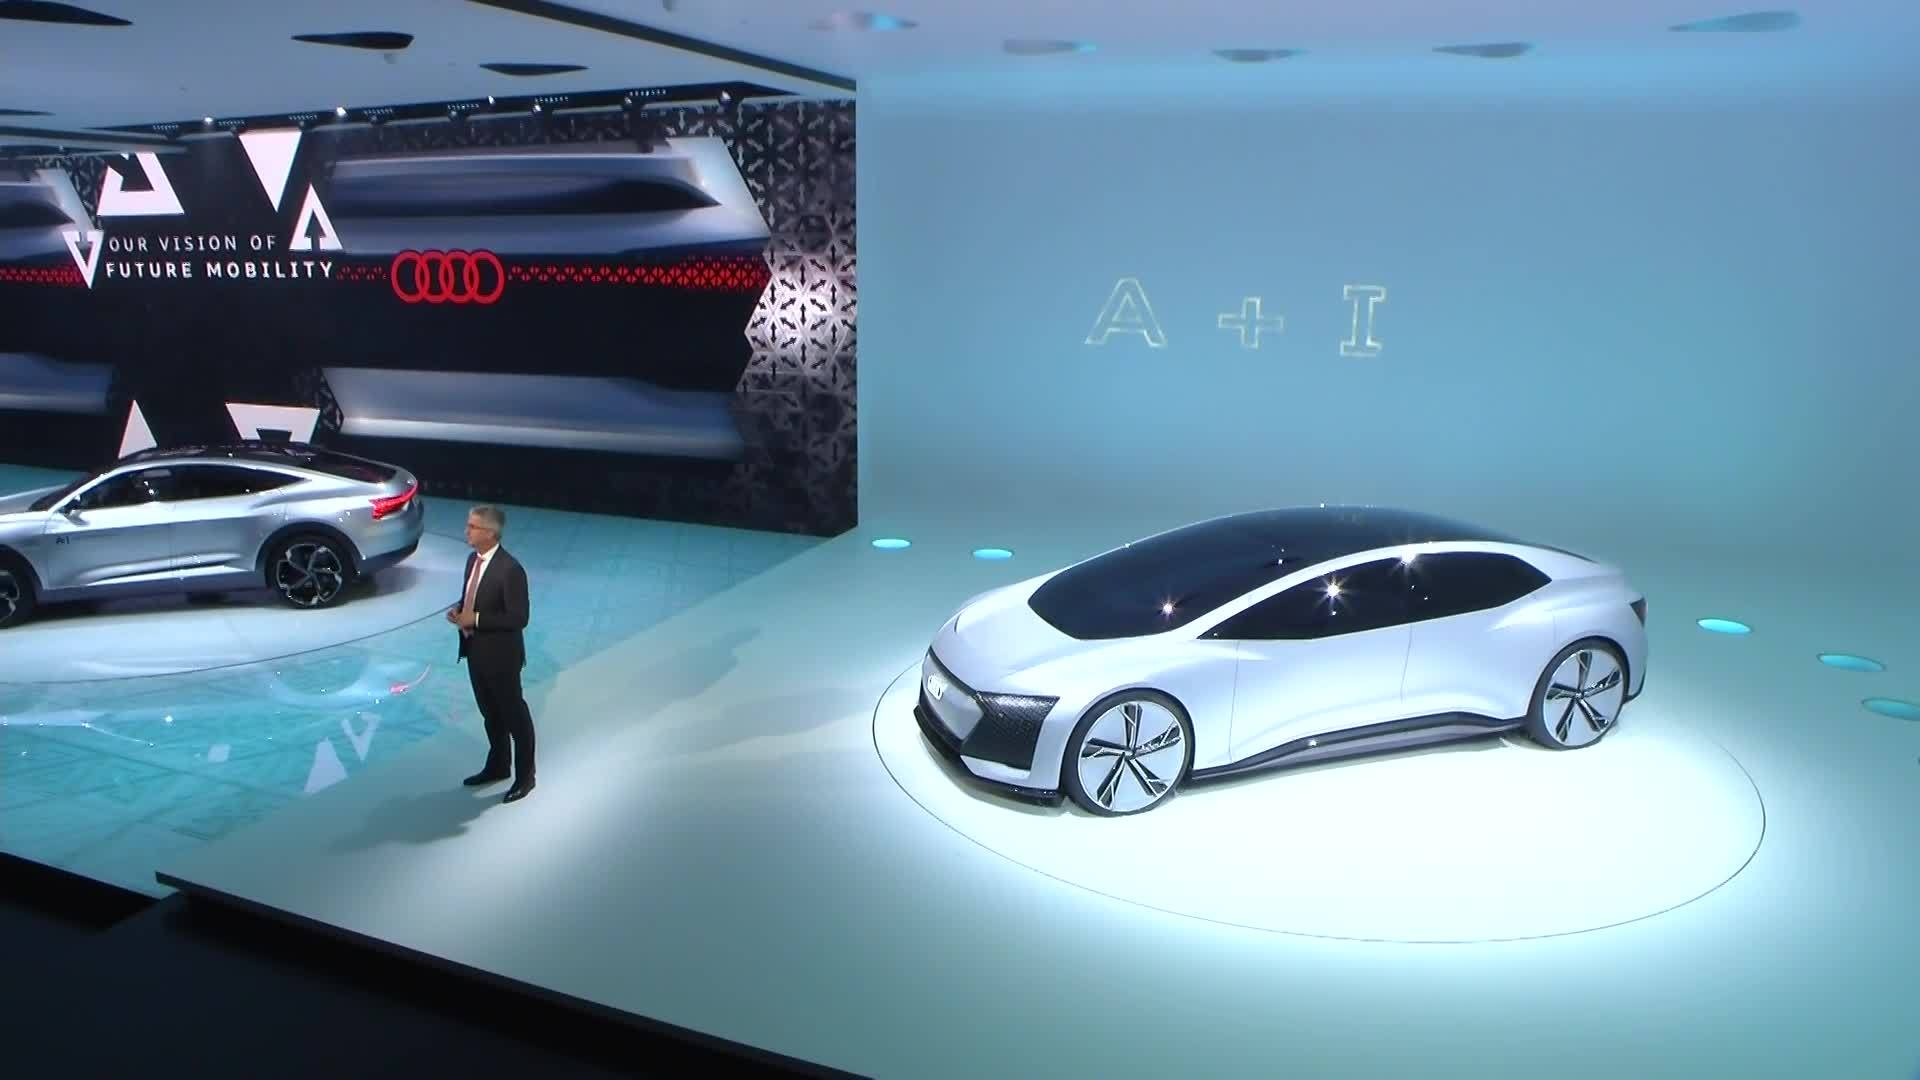 The AUDI AG press conference at IAA